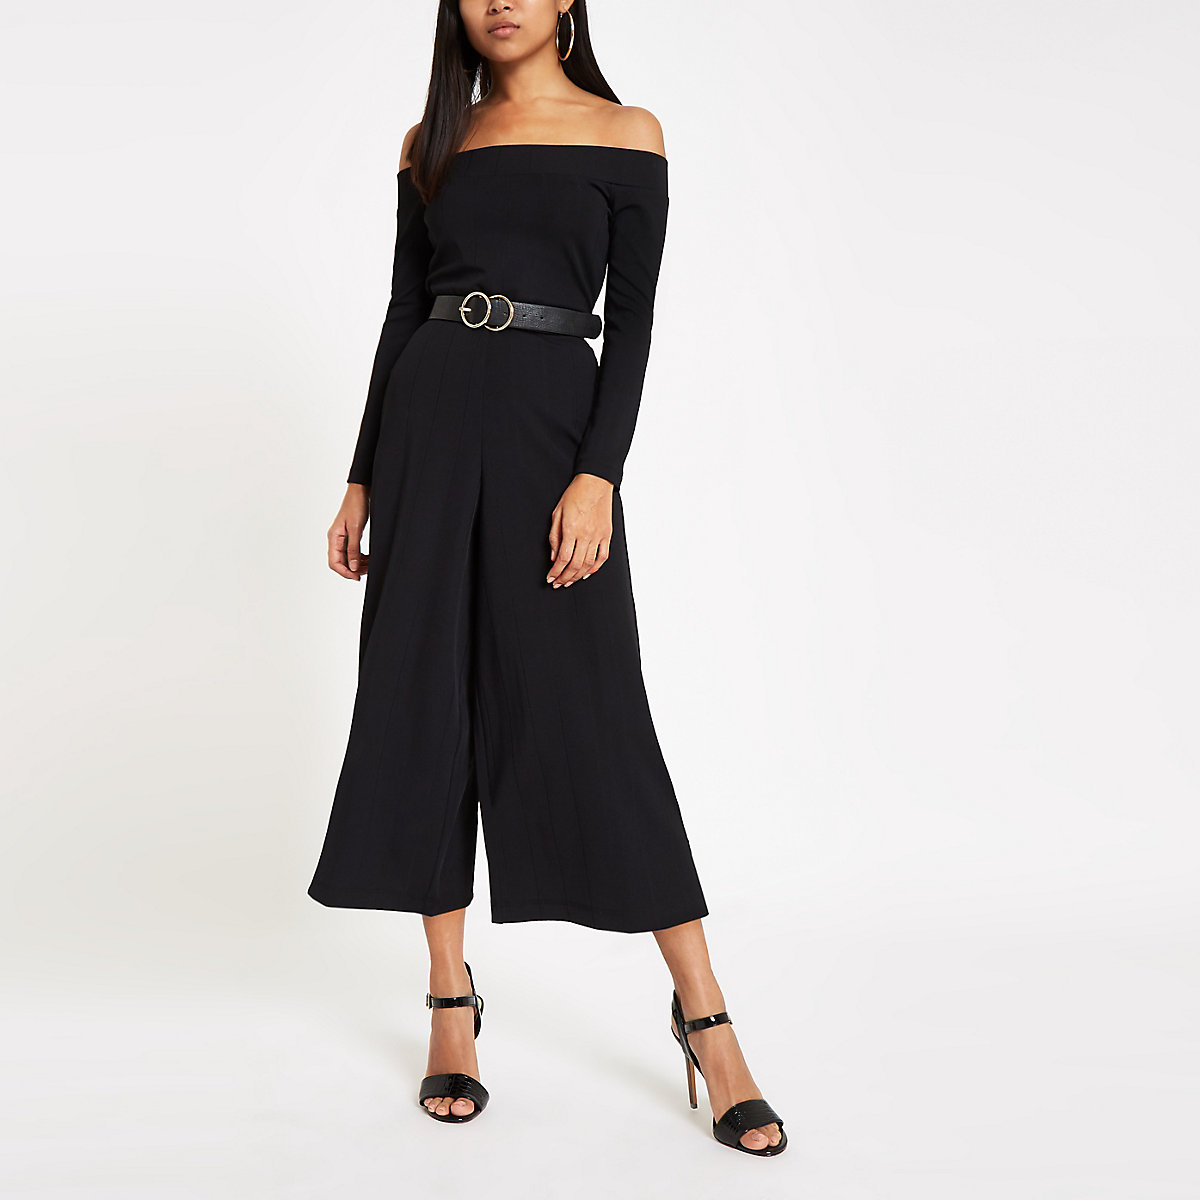 Petite black ribbed bardot wide leg jumpsuit